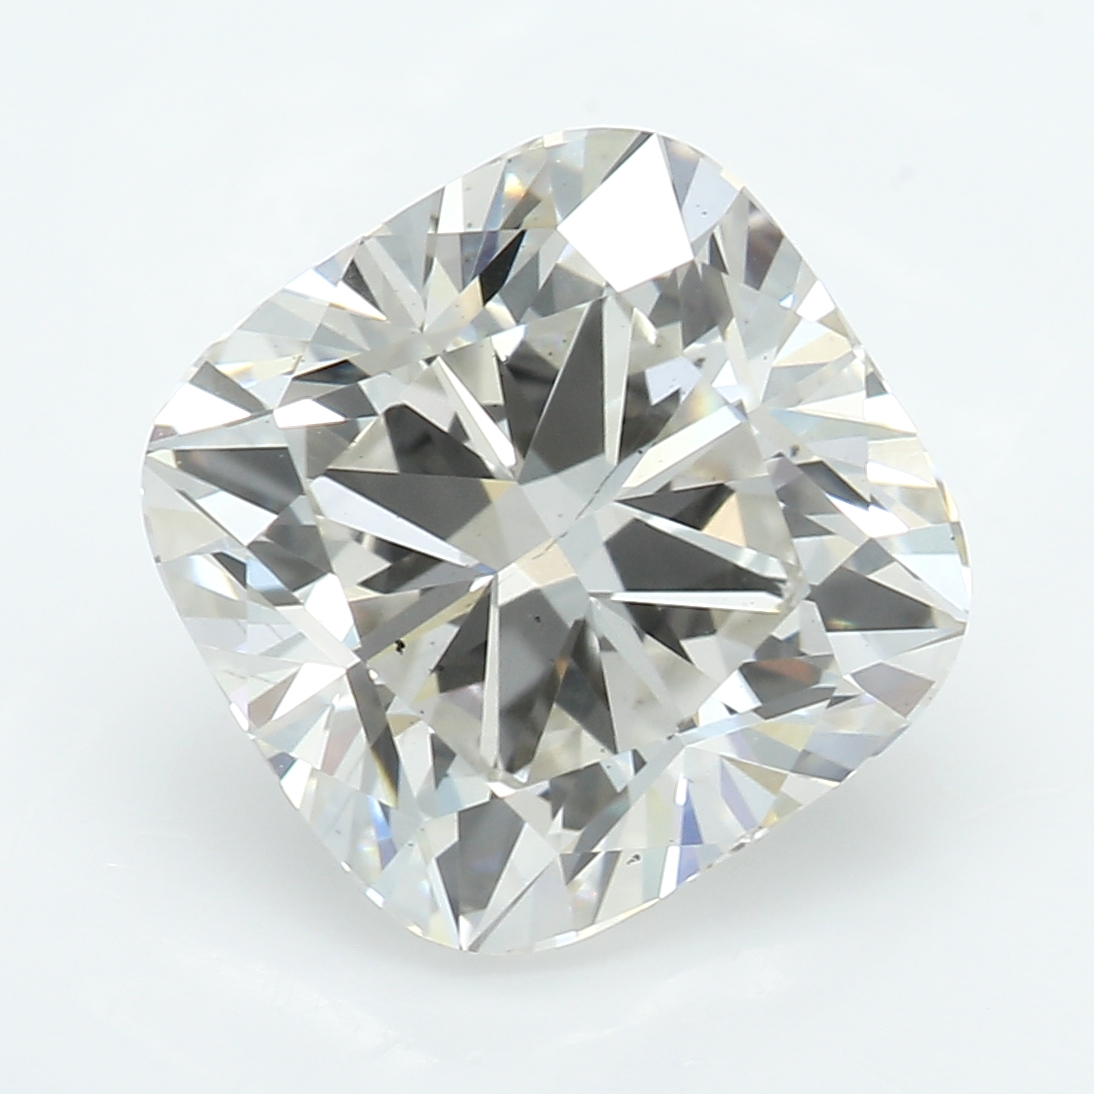 2.61 Carat I-SI1 Ideal Cushion Diamond